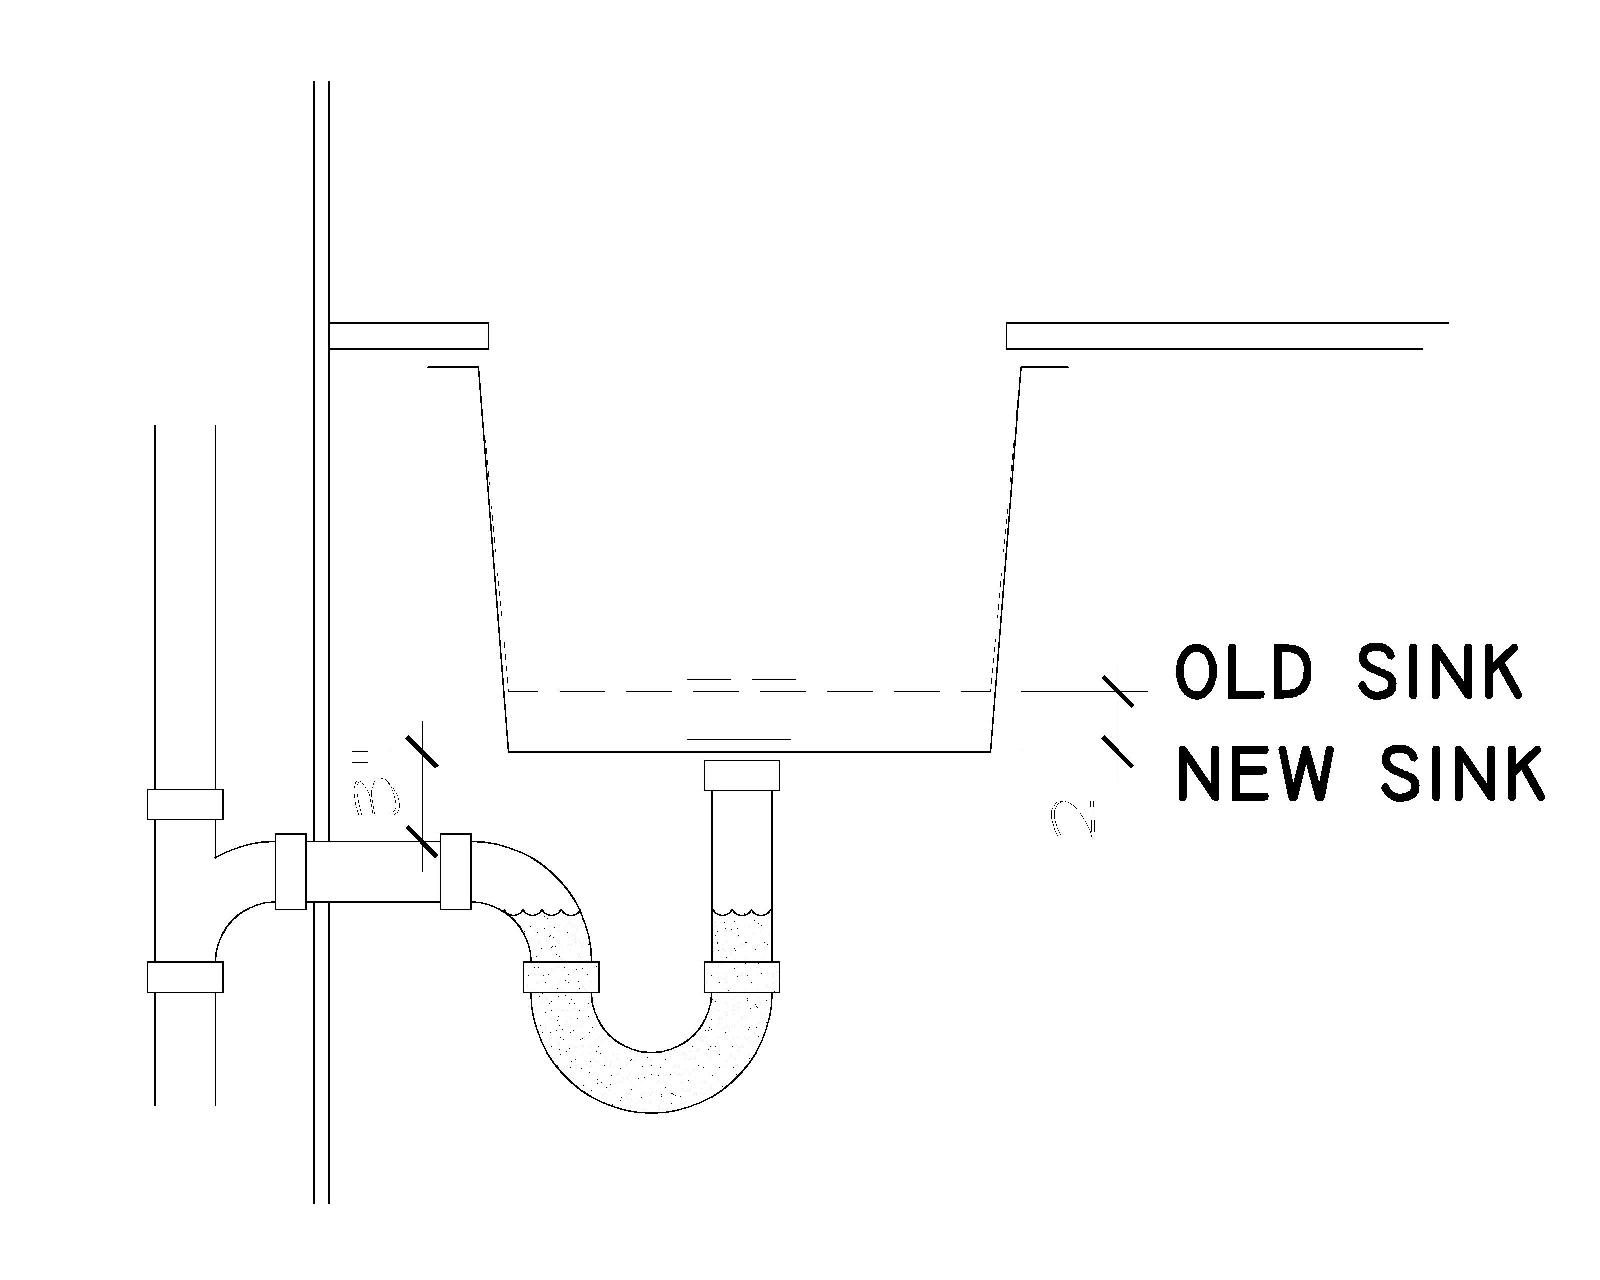 i have a new bathroom sink to install in an existing